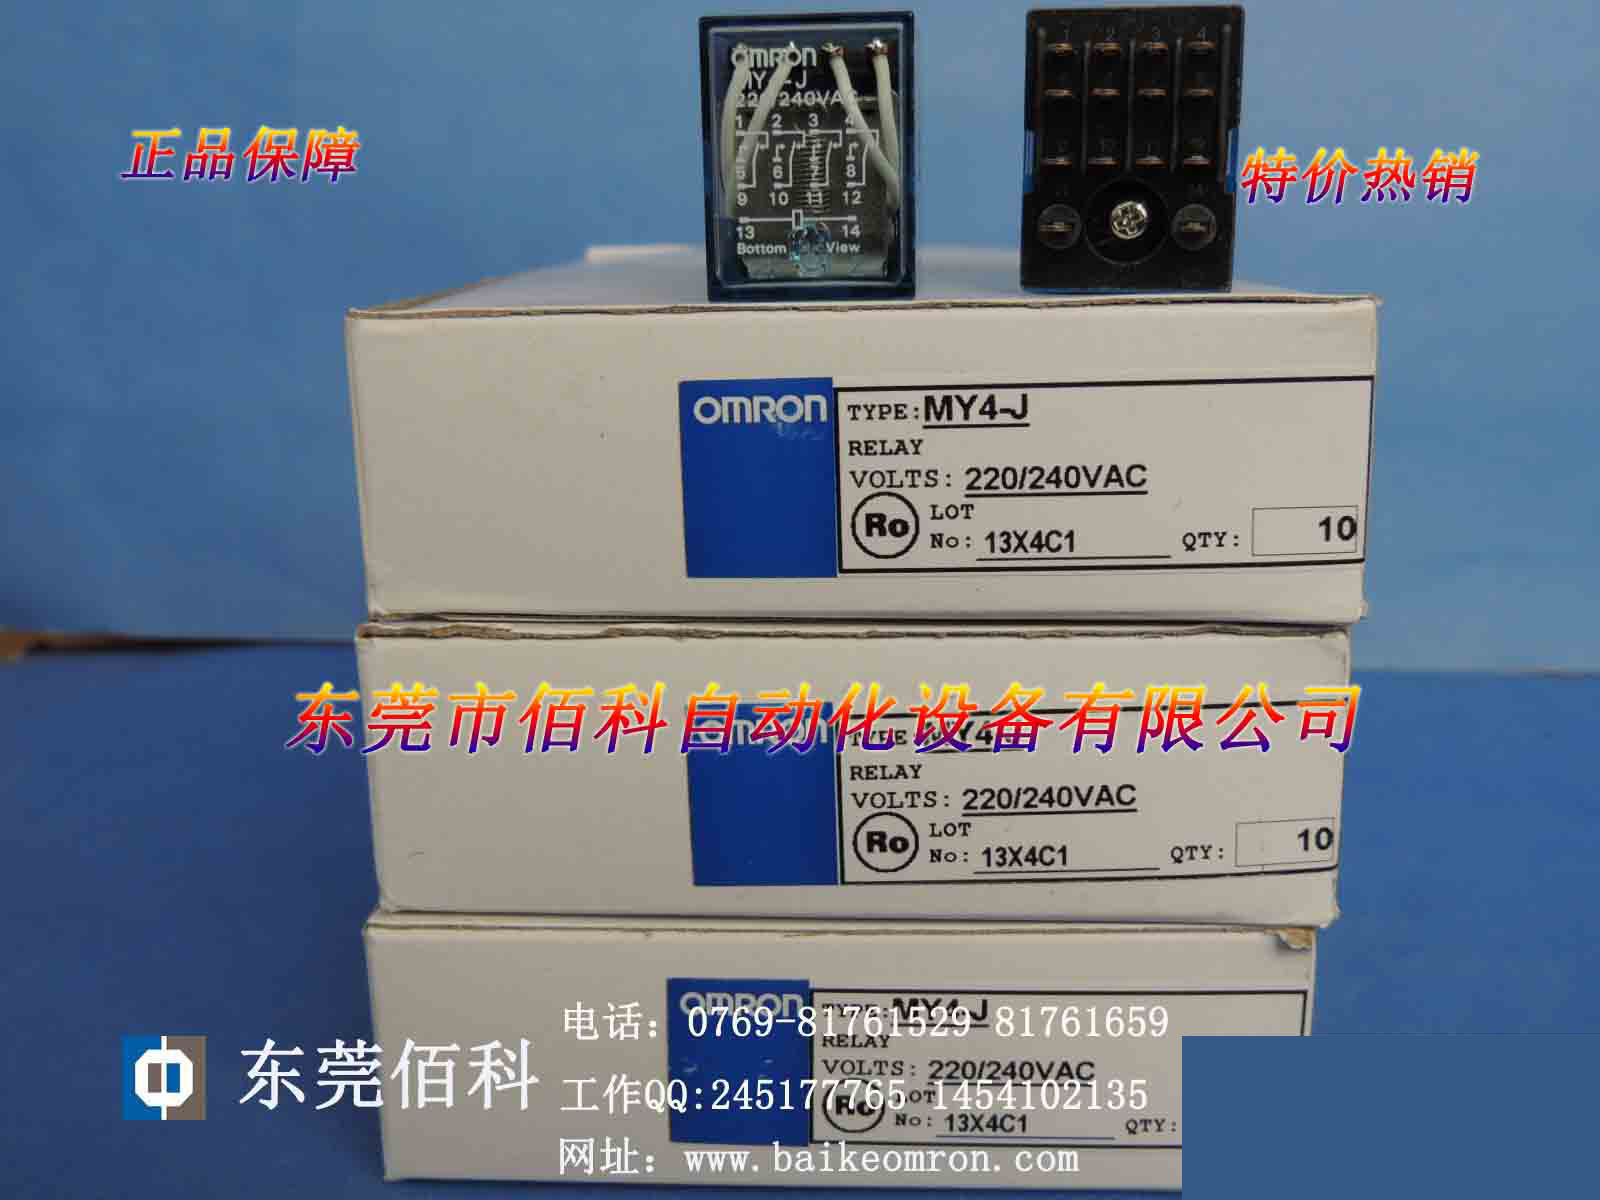 New relay MY4J/MY4-J AC220V with one year warrantyNew relay MY4J/MY4-J AC220V with one year warranty